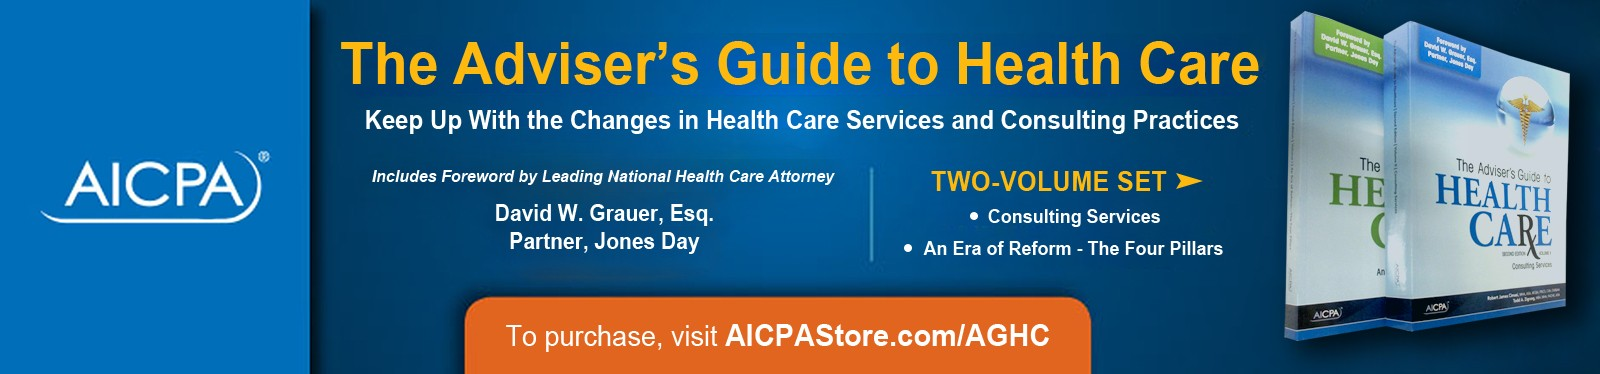 1 Advisers Guide To Health Care Banner 1600 374